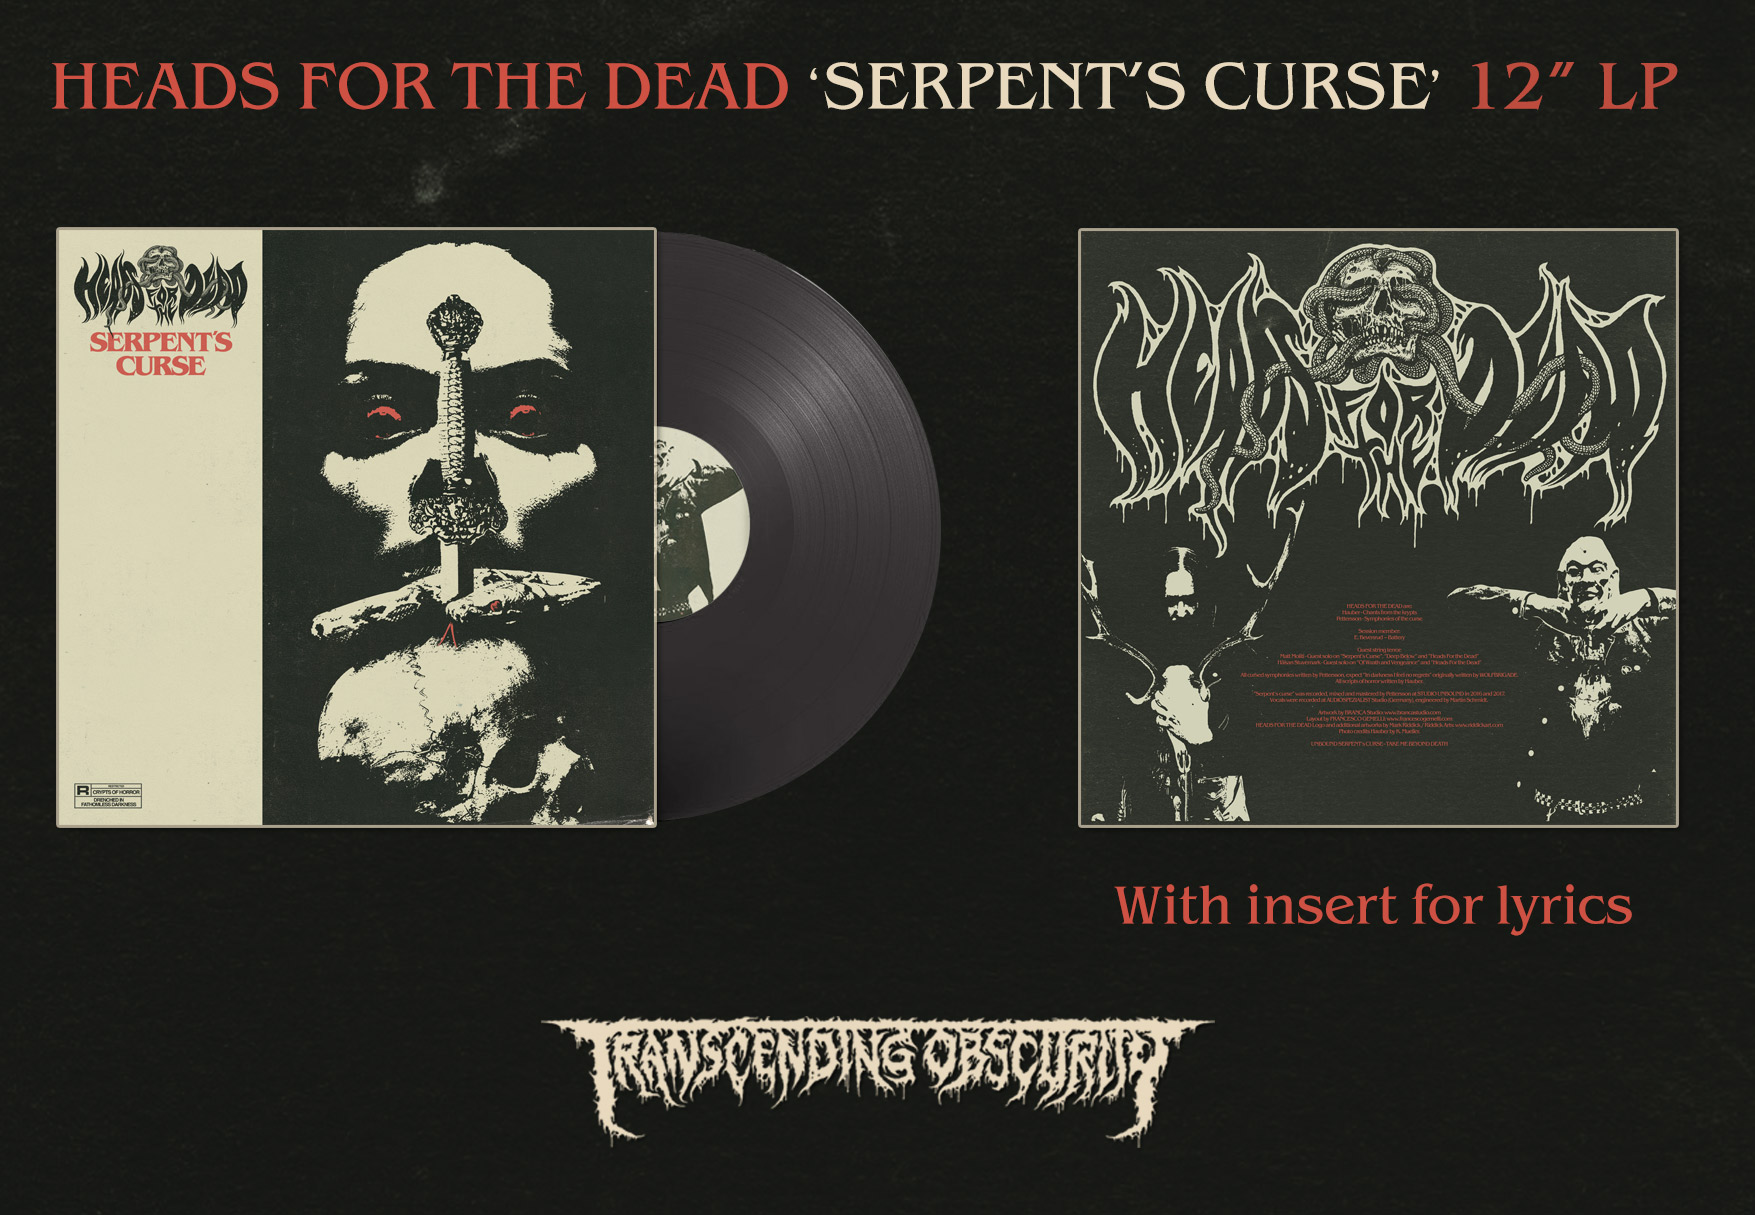 HEADS FOR THE DEAD (International) - Serpent's Curse Black LP (Limited to 100)